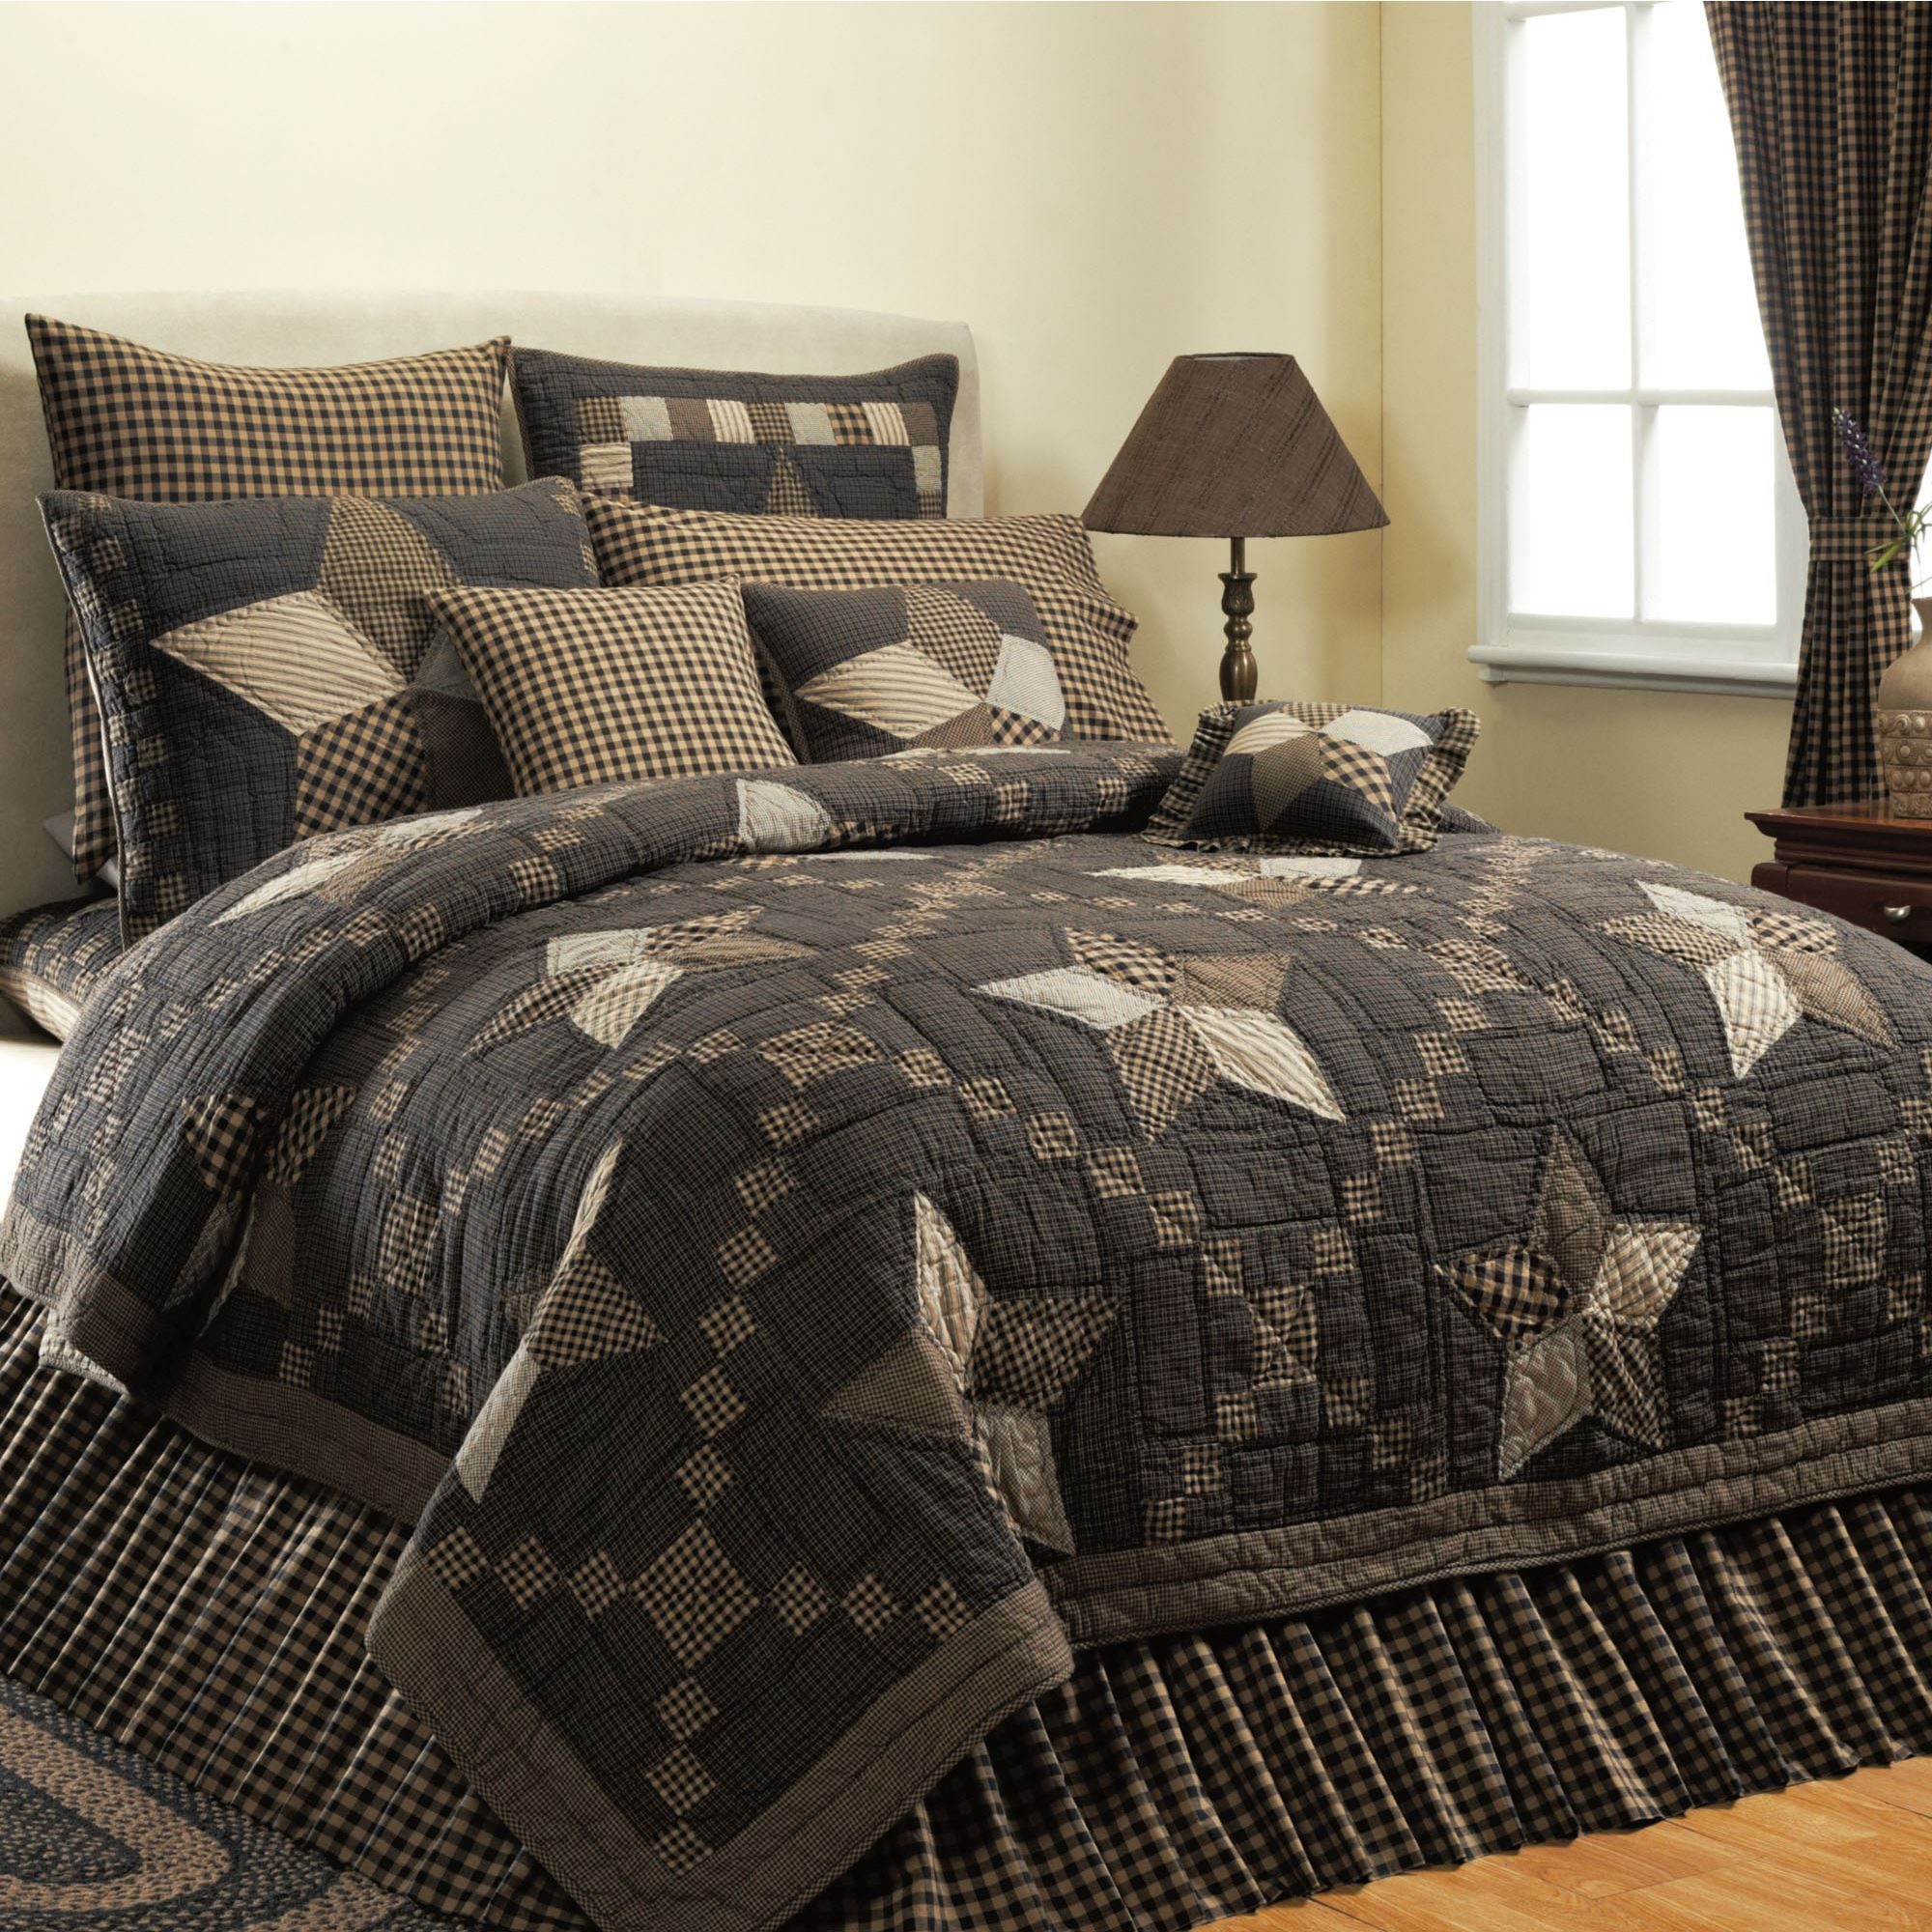 shabby chic black bear cabin comforter comforters lauren bedding rustic beds sets clearance conrad